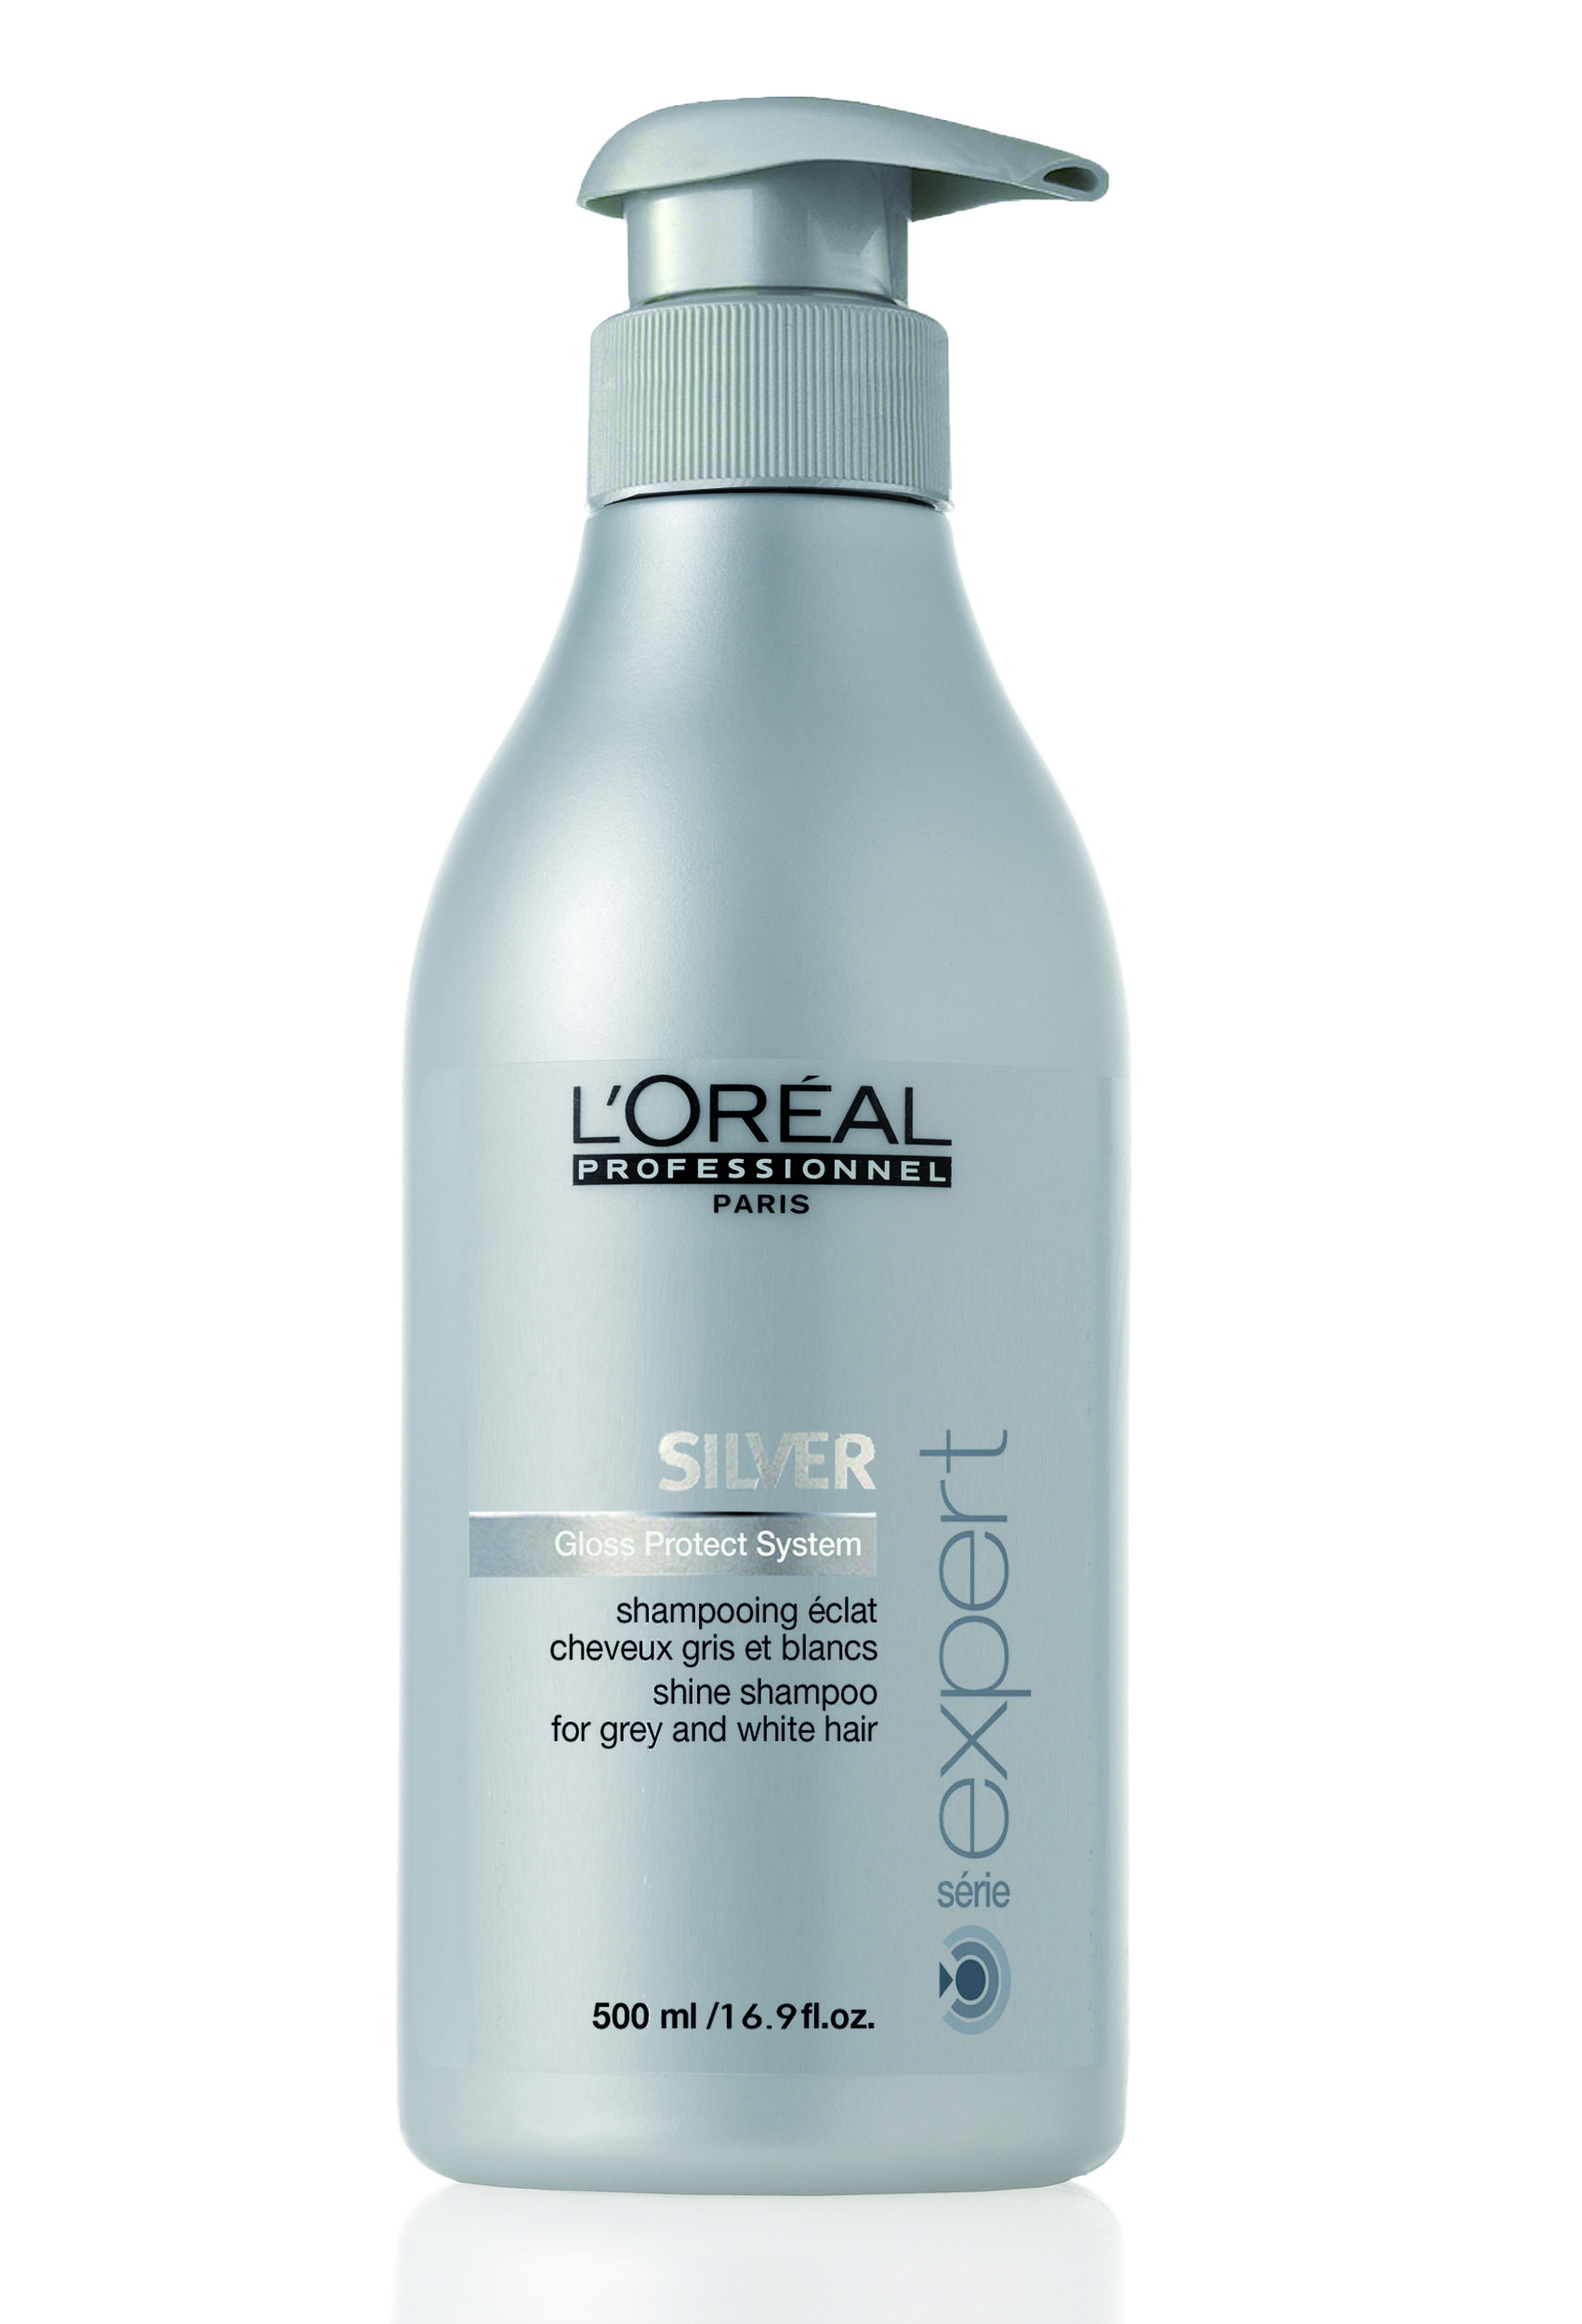 hair grey shampoo silver shine care expert professionnel paris волосы светлые 500ml shampoos purple gray oreal ingredients serie oreal